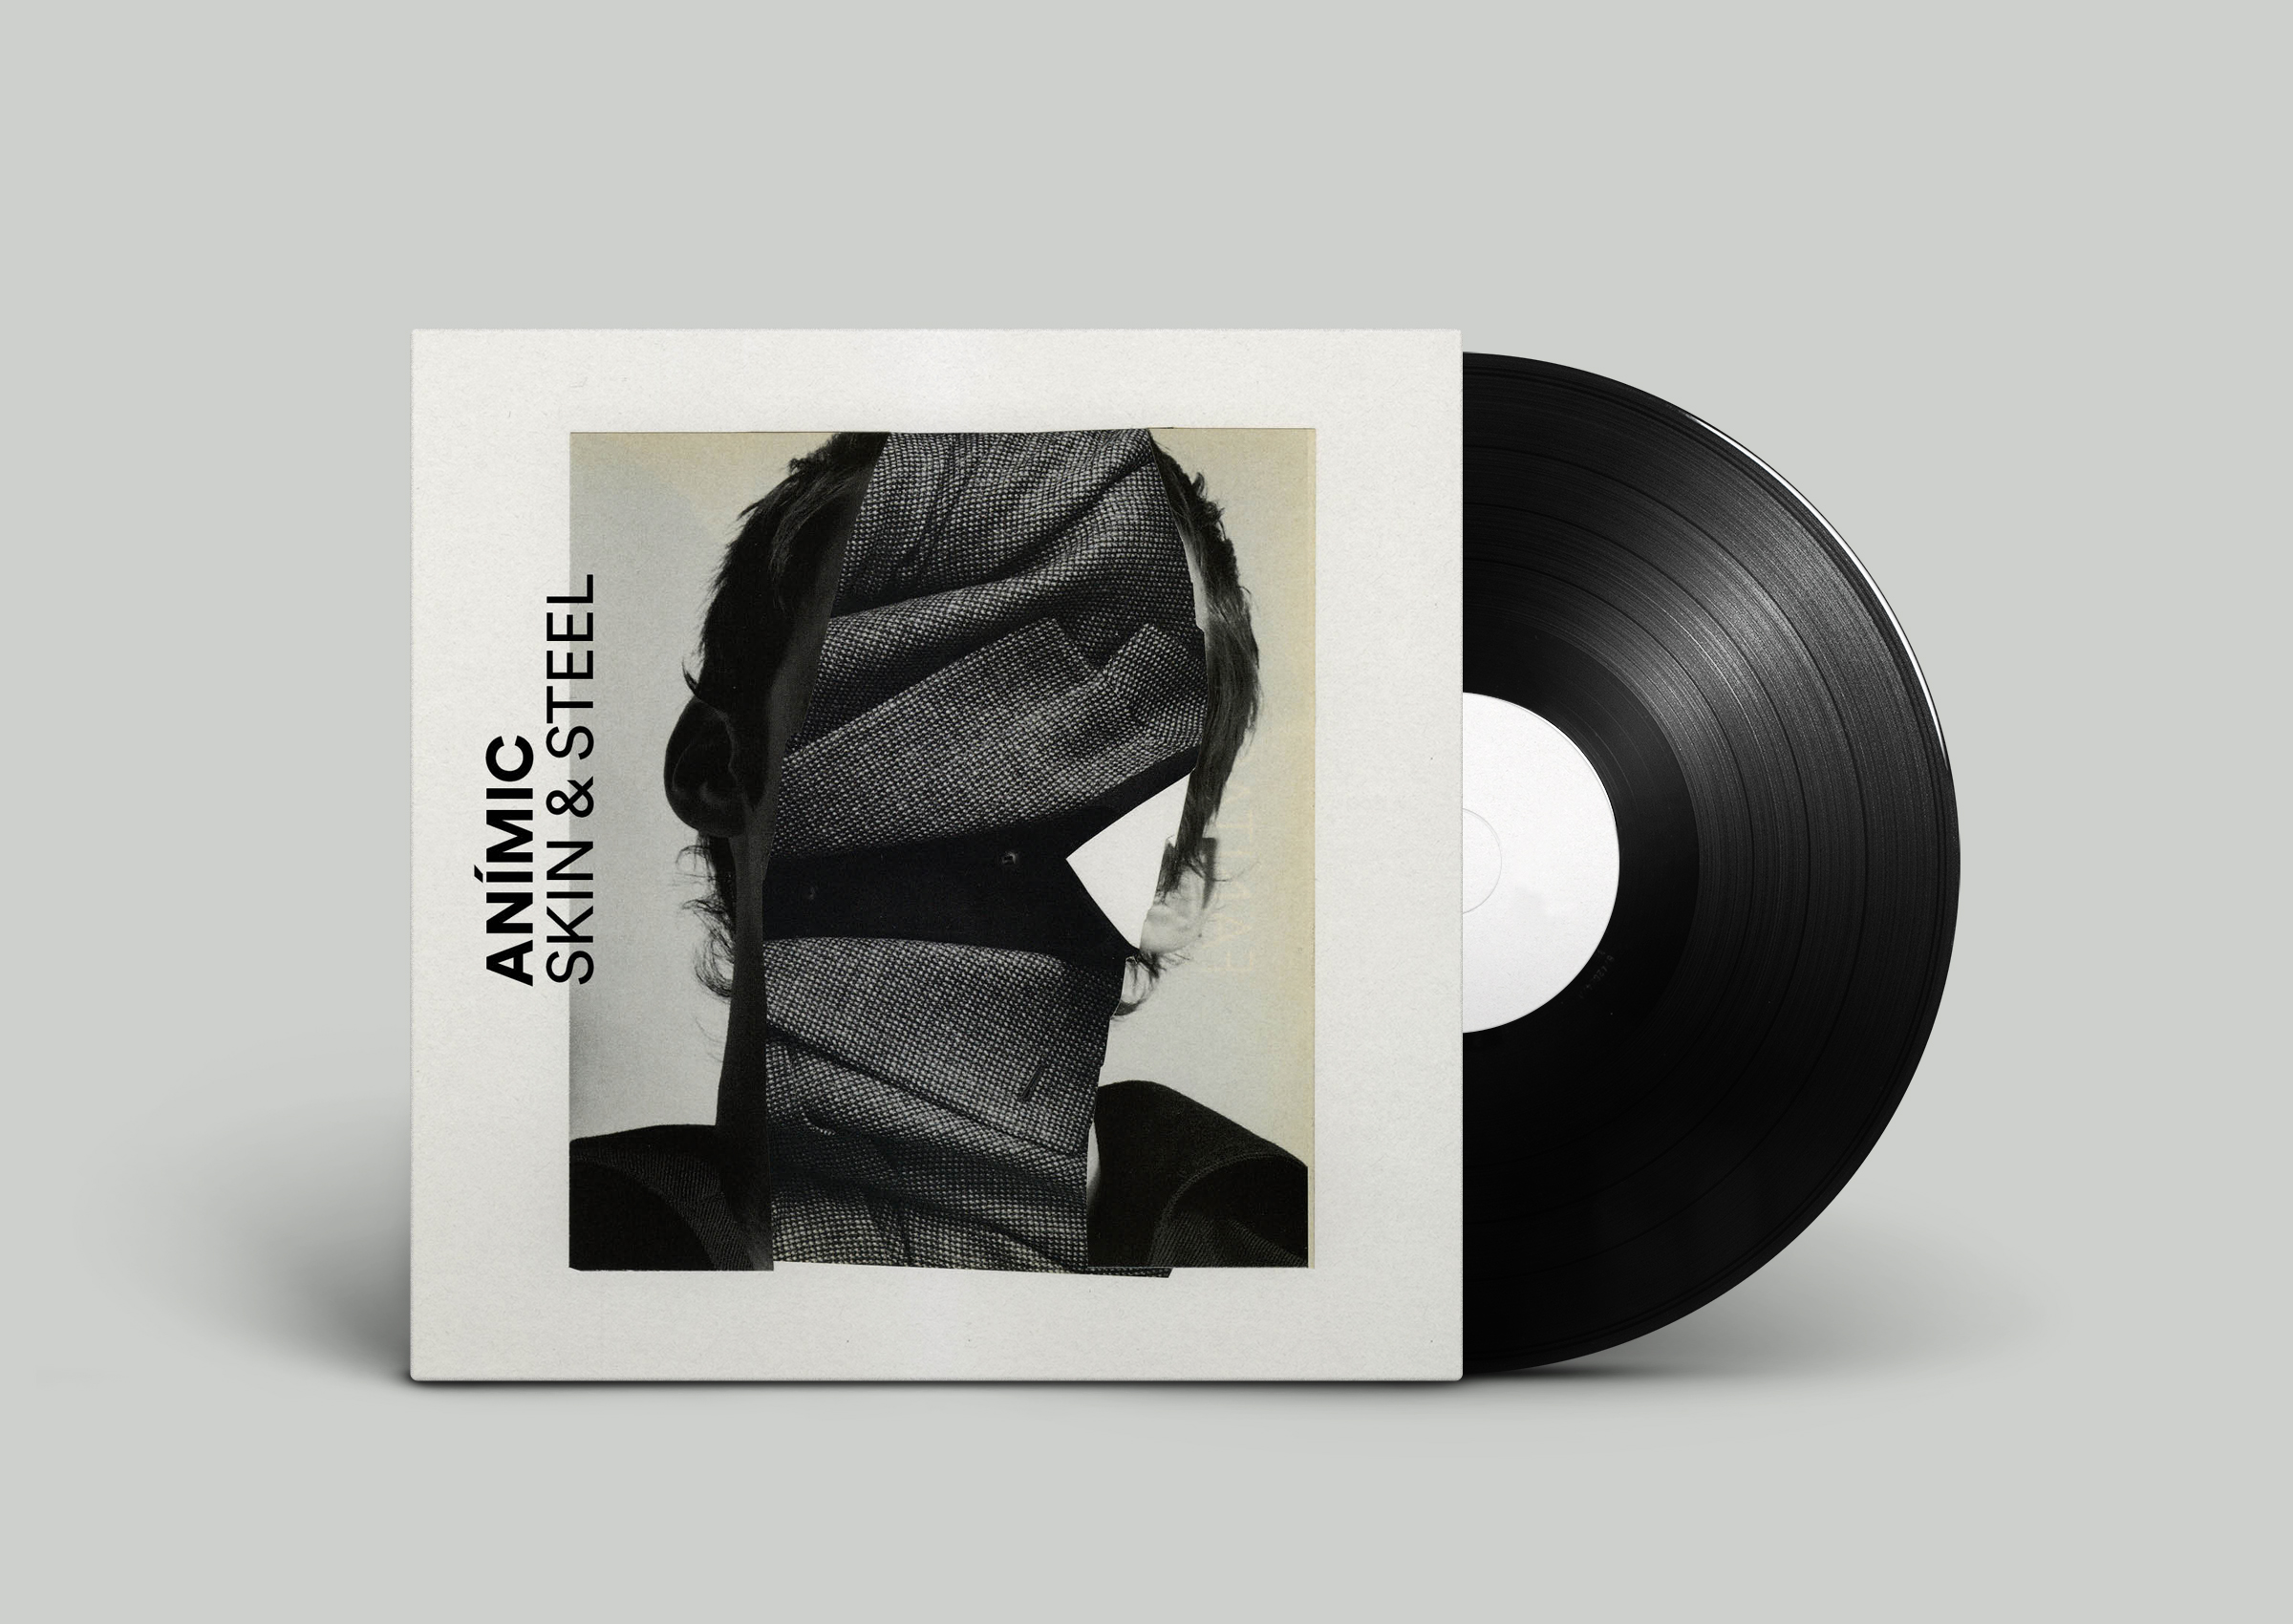 ANIMIC_Vinyl Record PSD MockUp